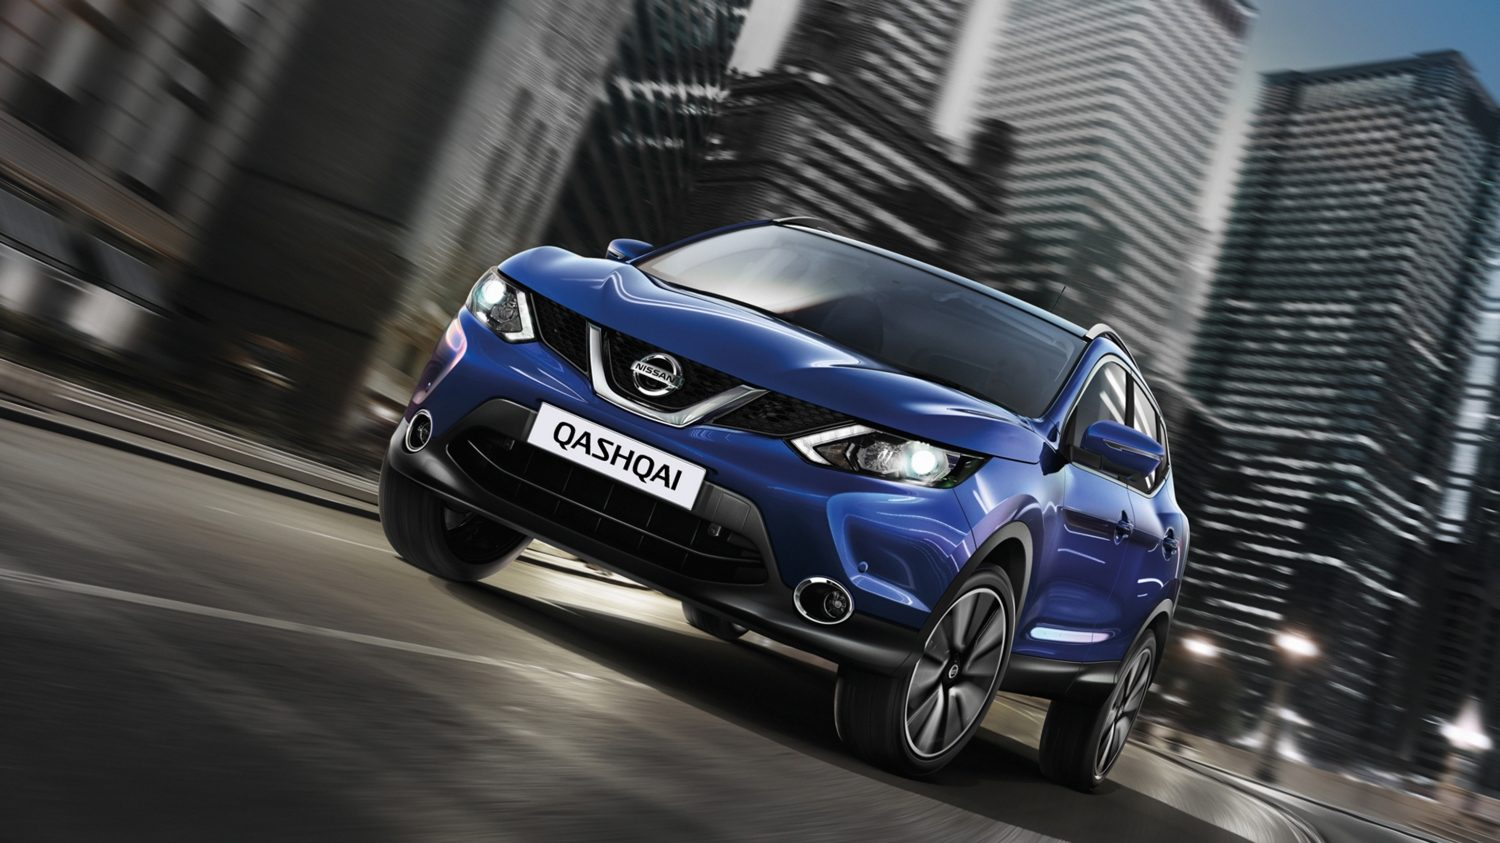 0:28 All-new Nissan Qashqai -- introducing the world's most parkable car